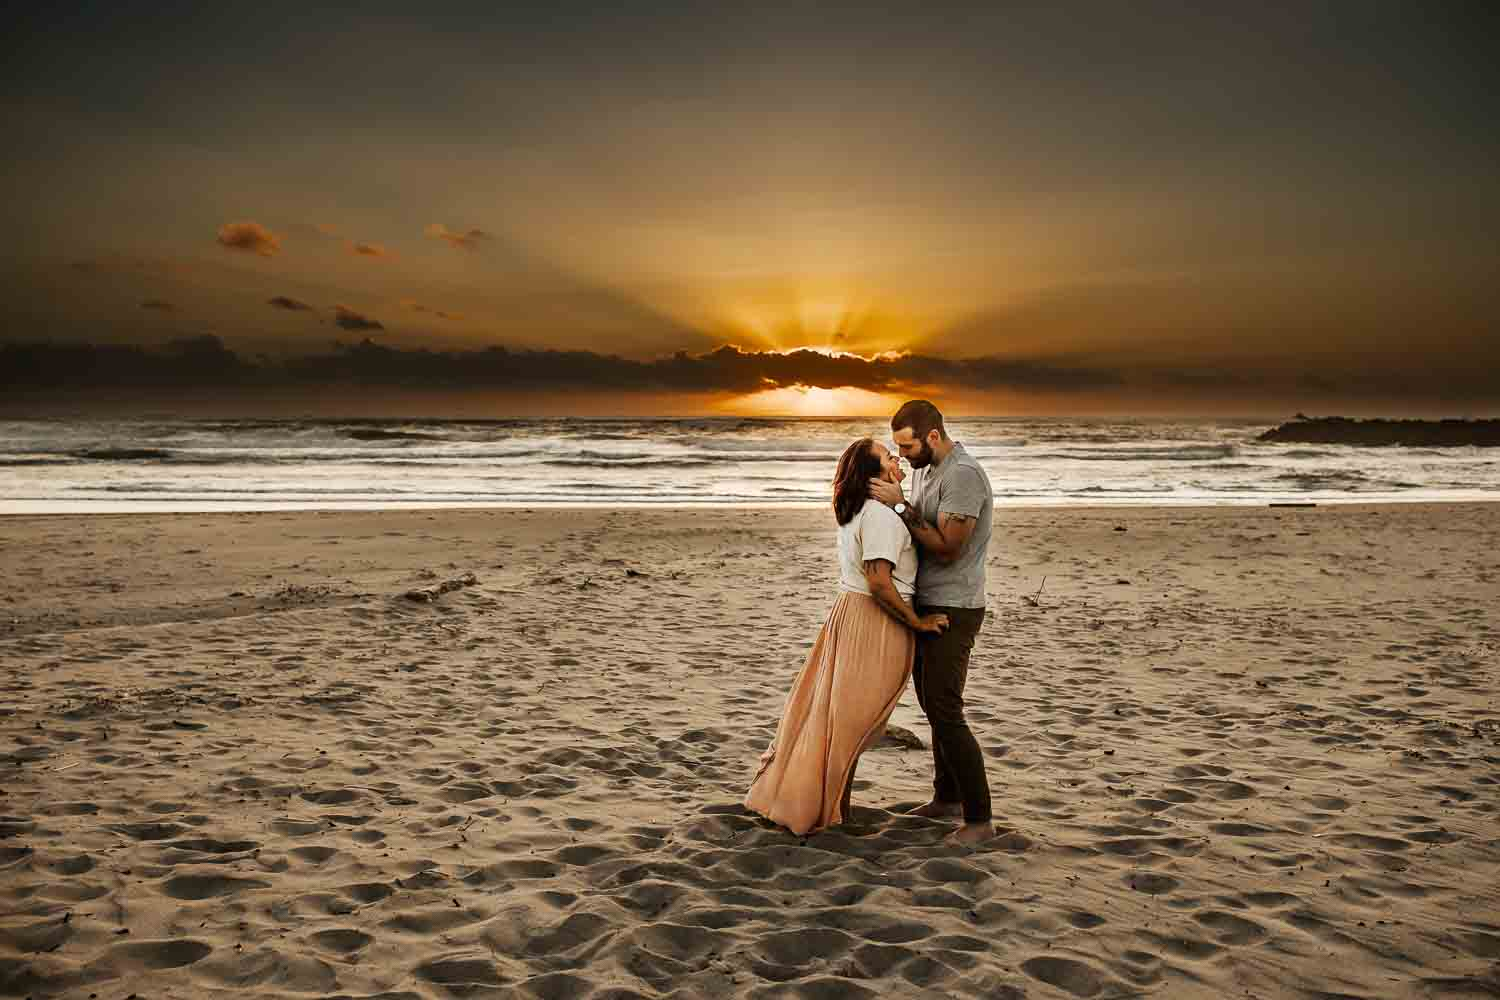 best locations for couples photography near Portland oregon- couple on the beach with the sun setting behind them - amazing sunset